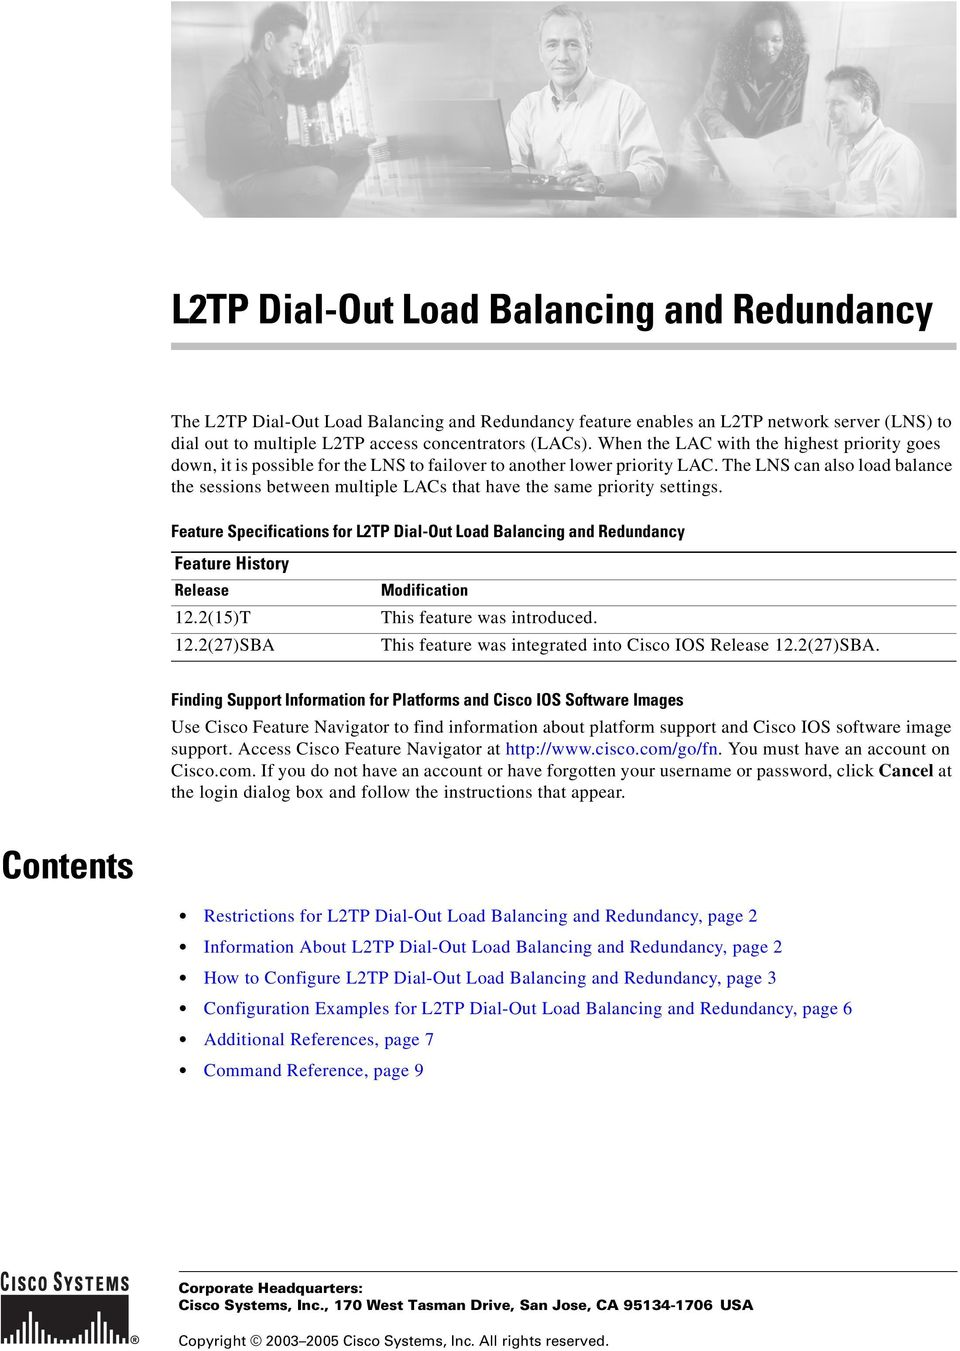 priority settings Feature Specifications for L2TP Dial-Out Load Balancing and Redundancy Feature History Release 122(15)T 122(27)SBA Modification This feature was introduced This feature was